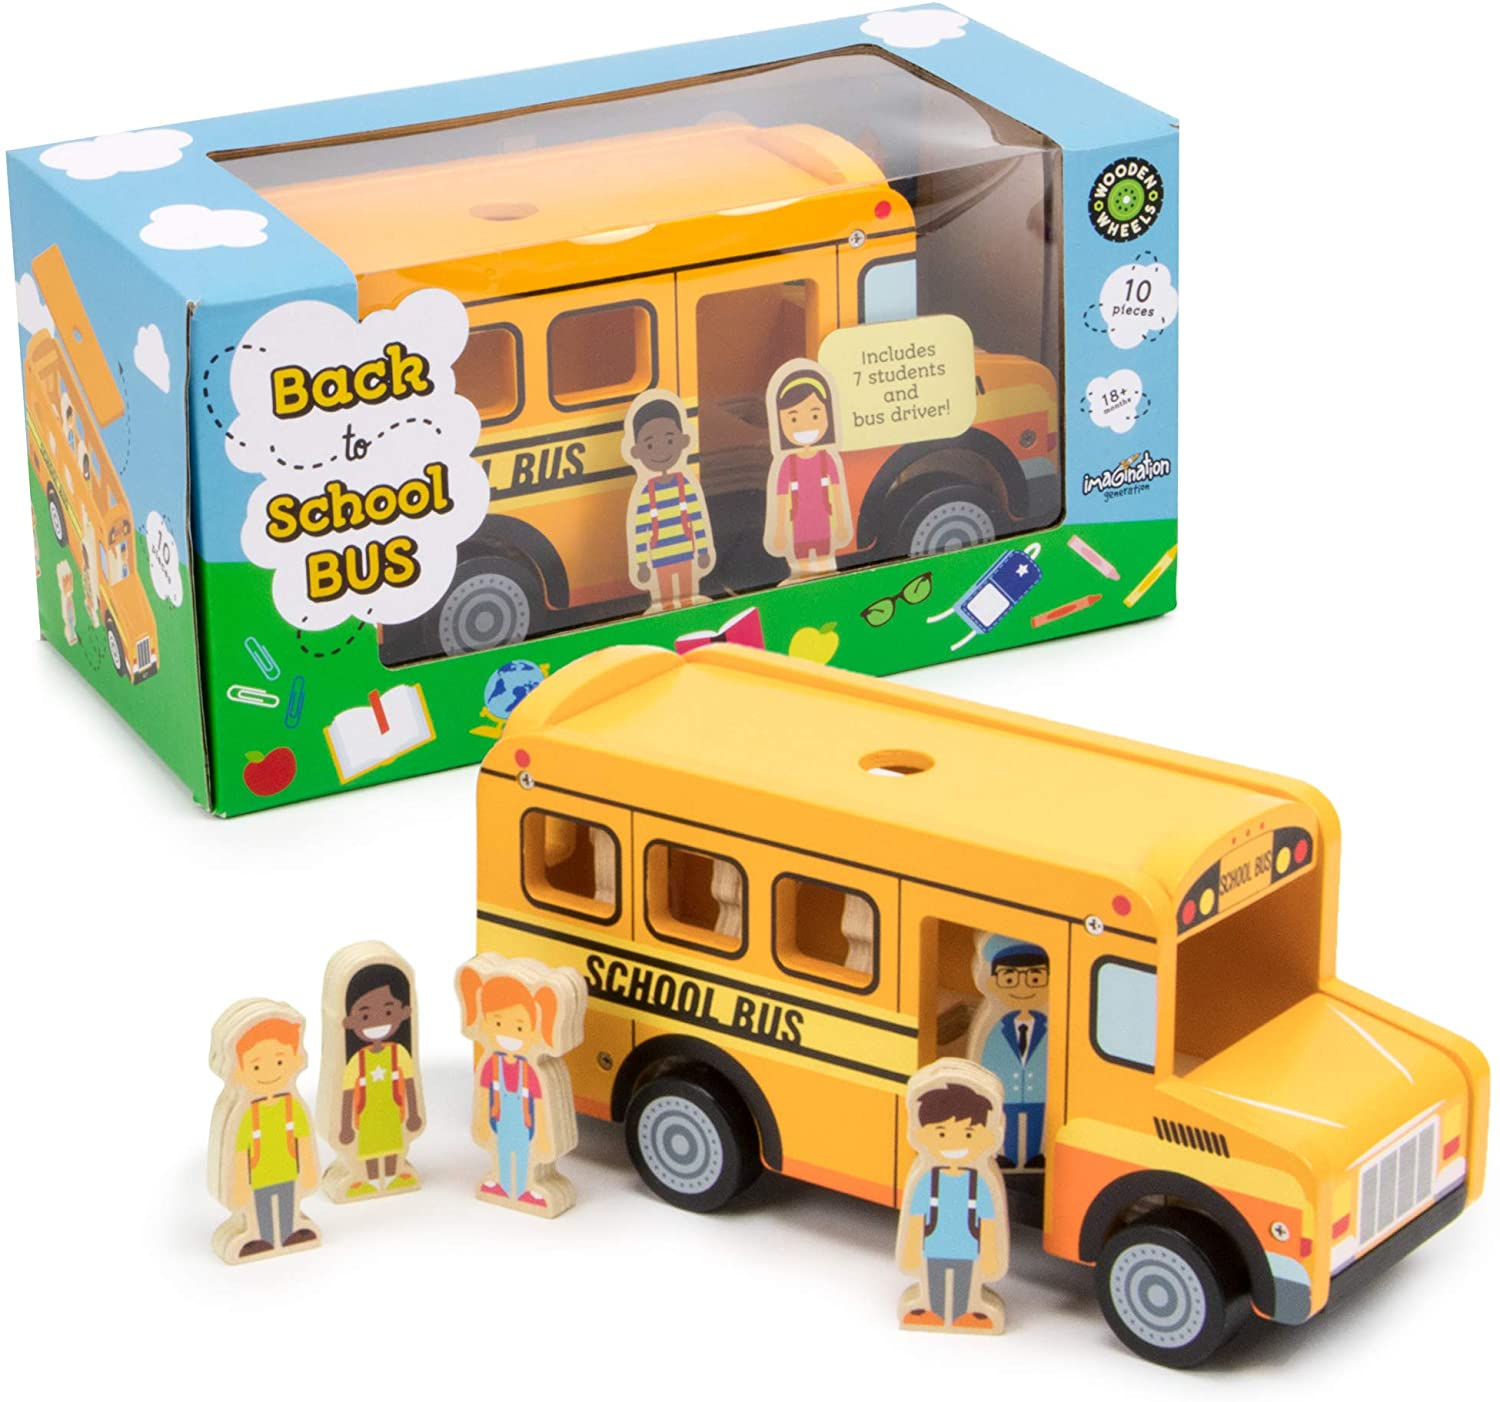 Back to School Bus Toy